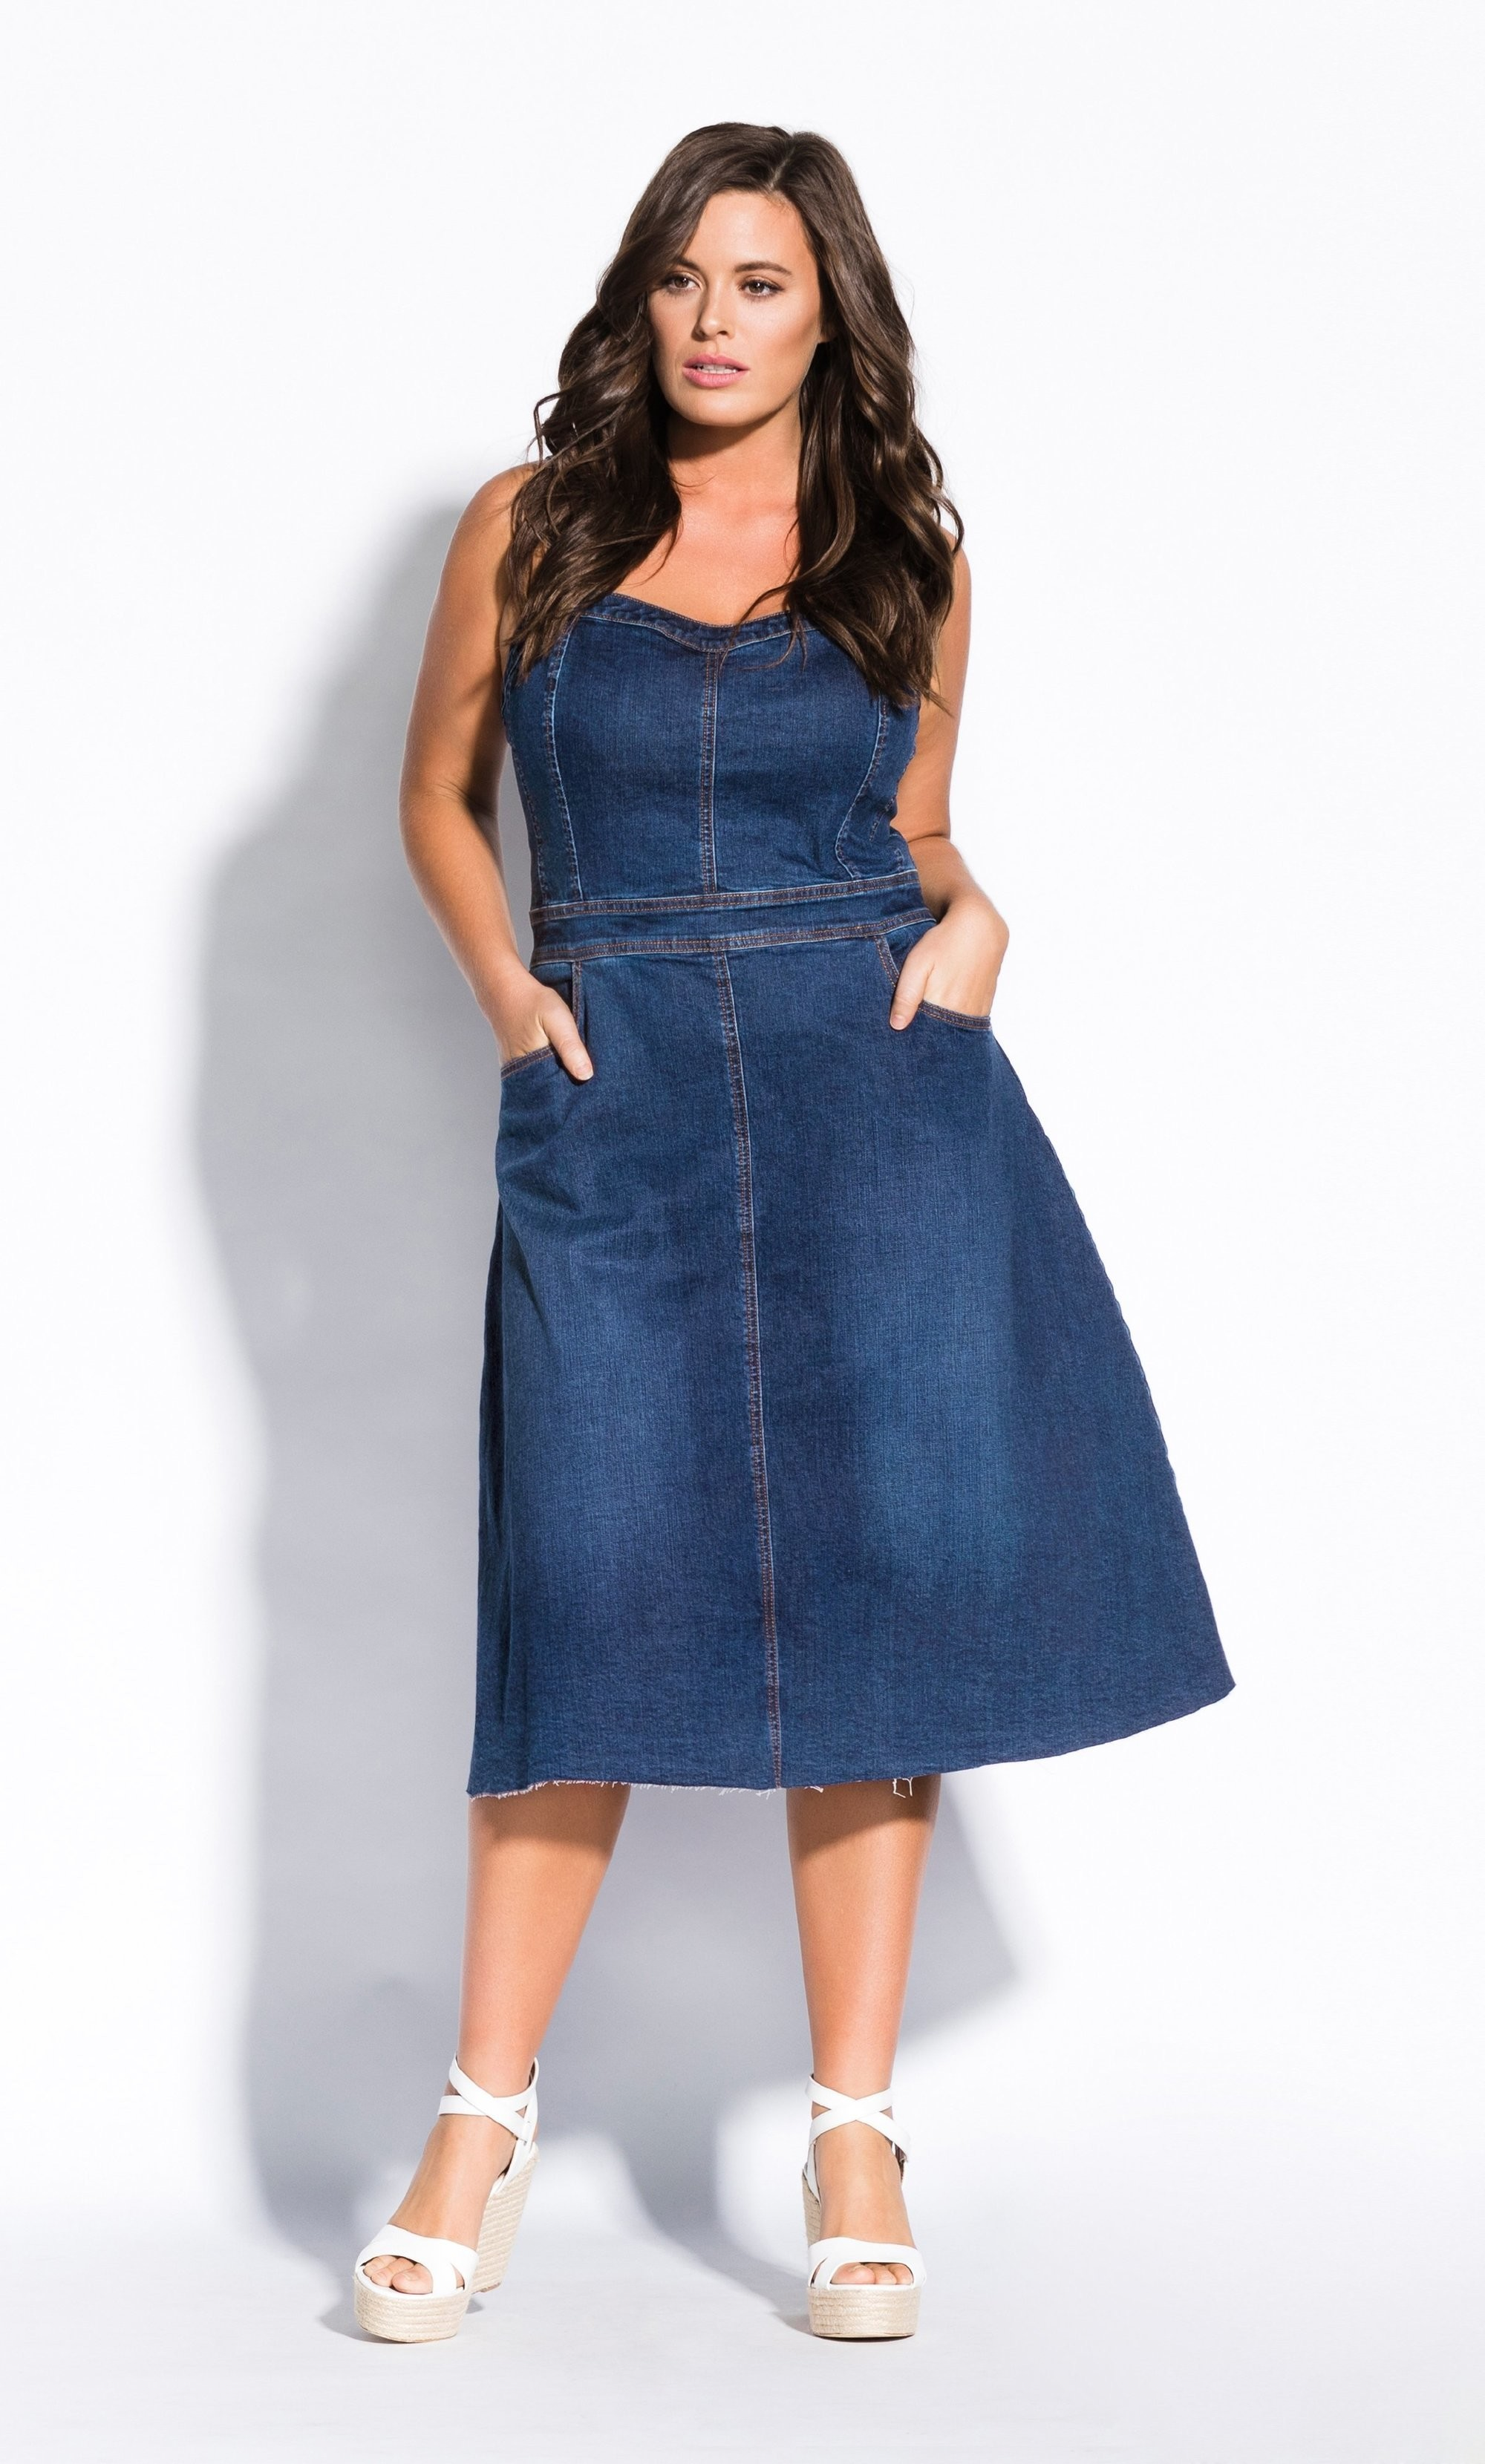 Sweet Denim Dress denim